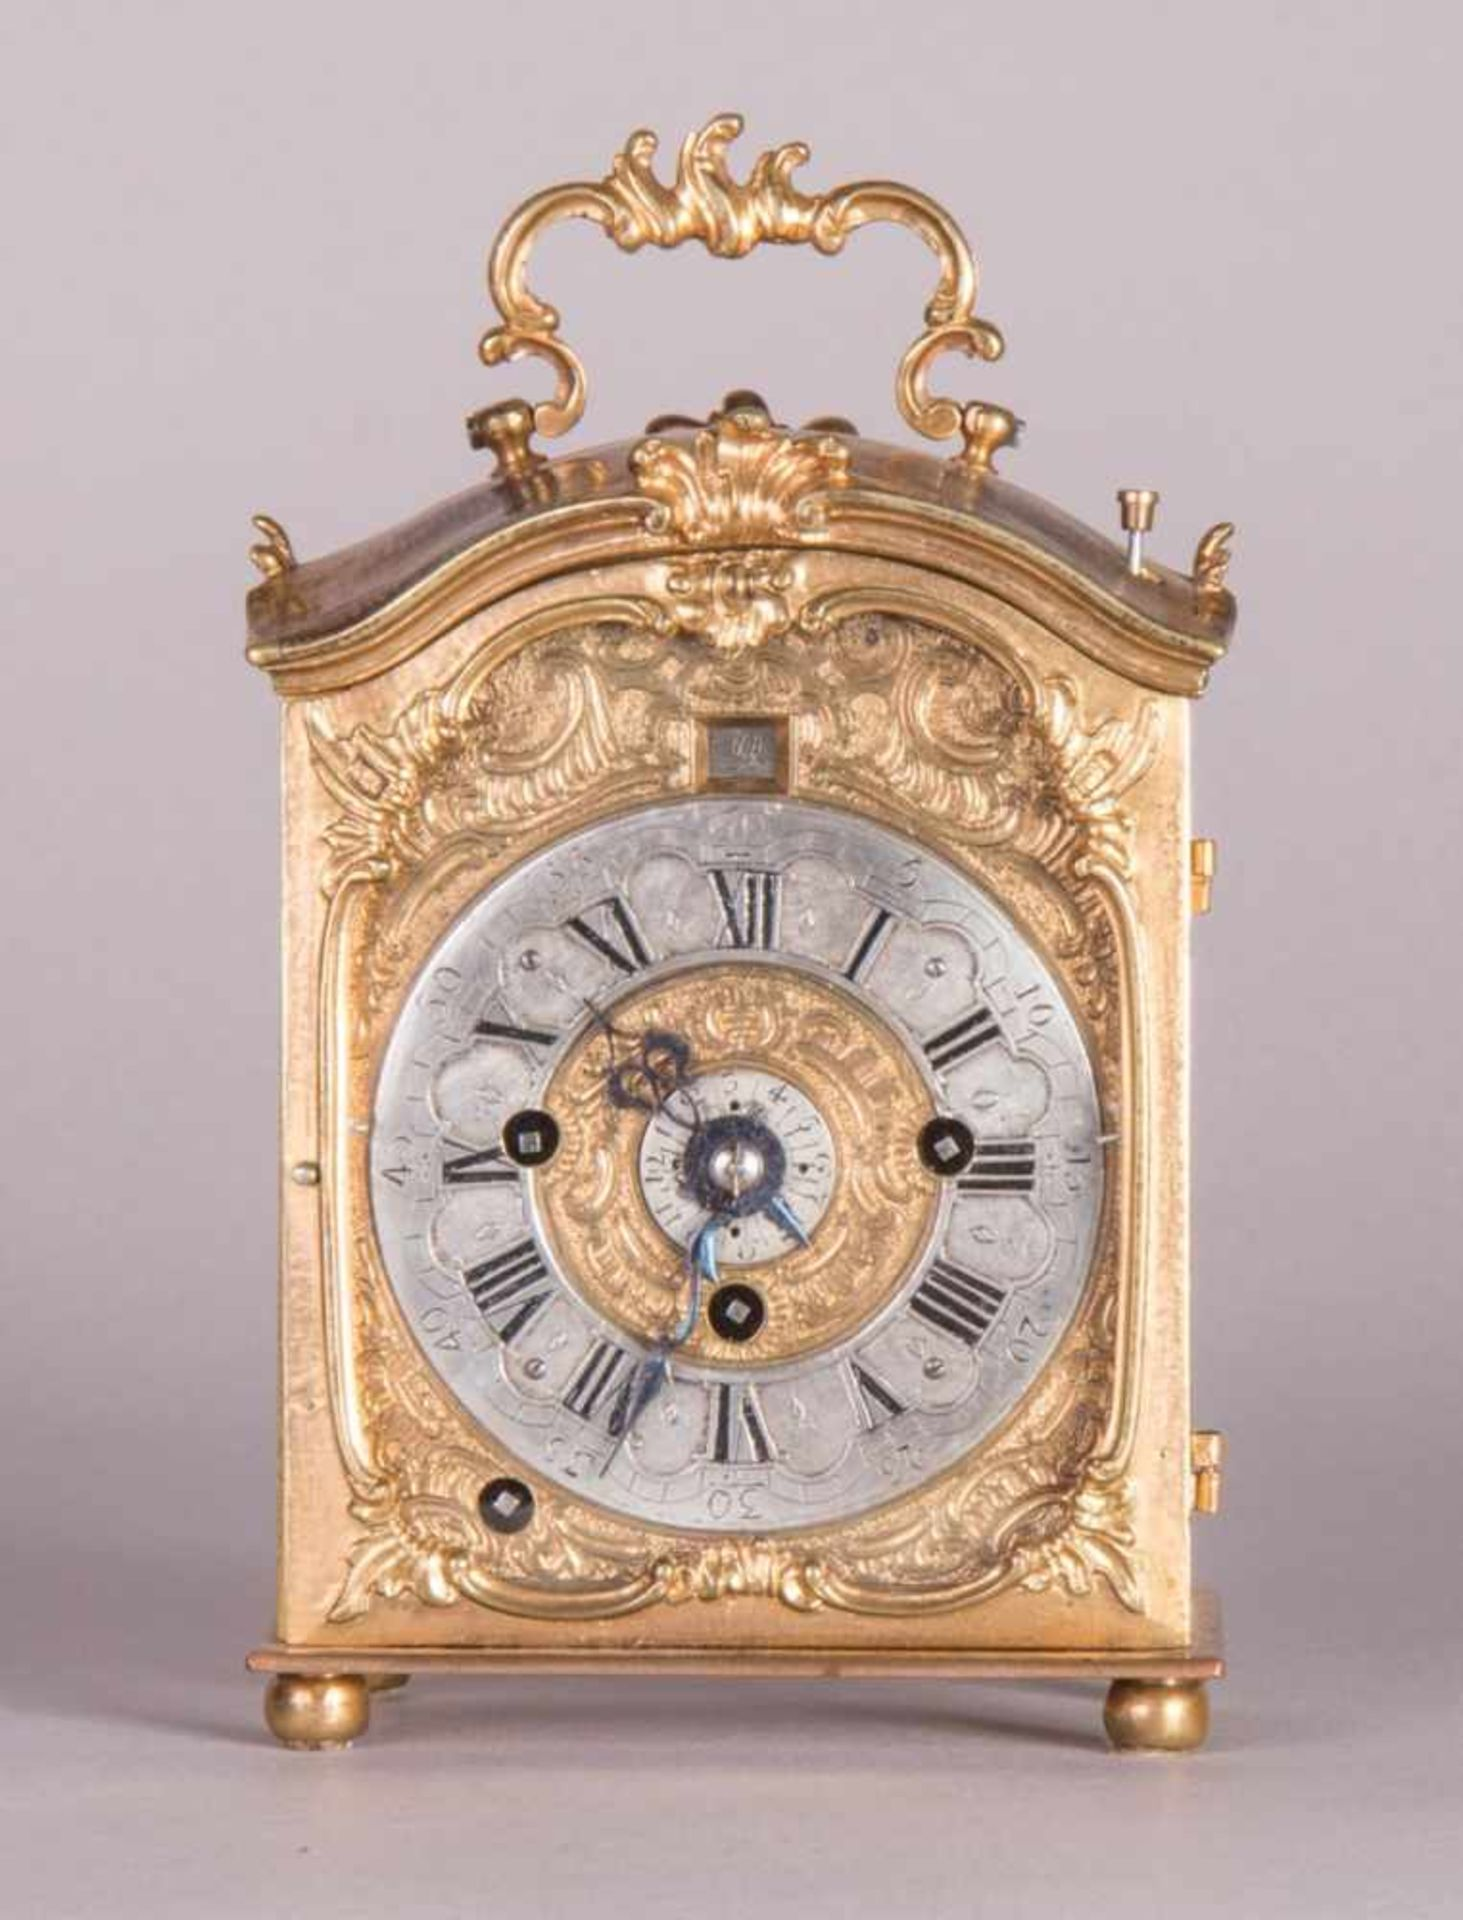 Los 62 - very early TravelclockBaroque travel clock with alarm function around 1750 H 14.5 x W 9 x D 5.3 cm